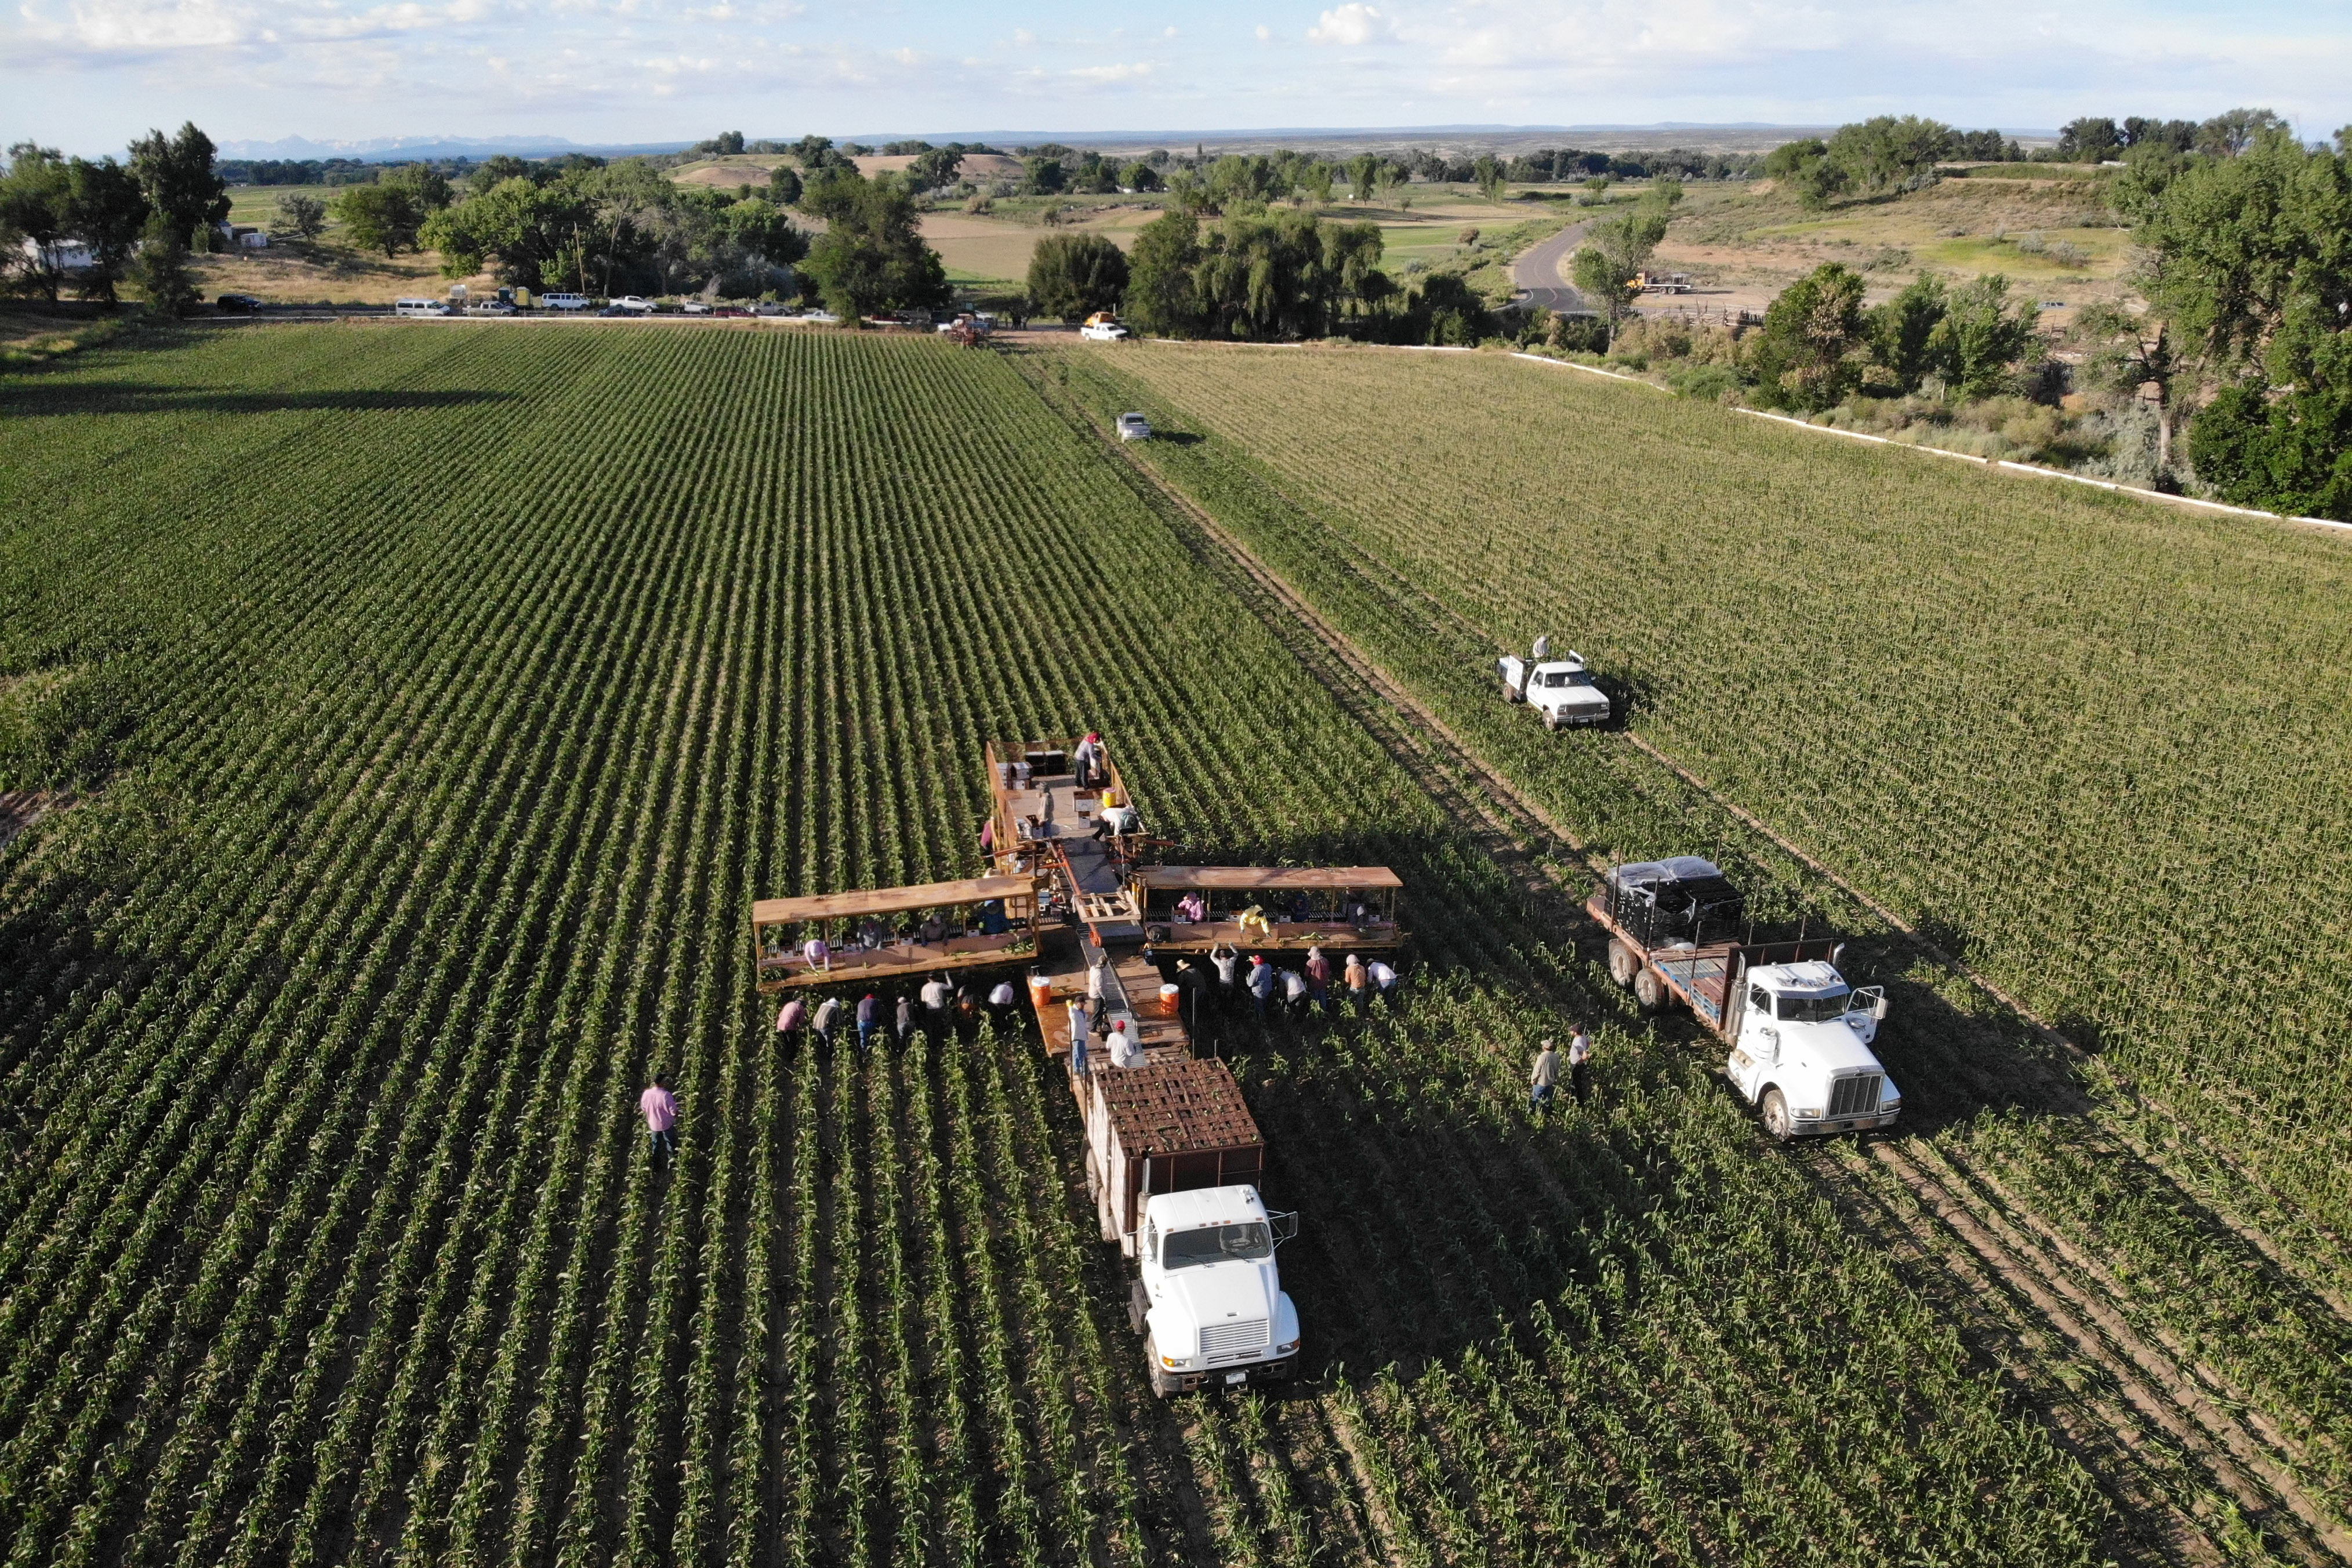 A harvest crew with Tuxedo Corn Company removes the first ears of the company's Olathe Sweet Sweet Corn harvest from a field west of Pea Green Colorado Wednesday July 24, 2019. (William Woody, Special to the Sun)